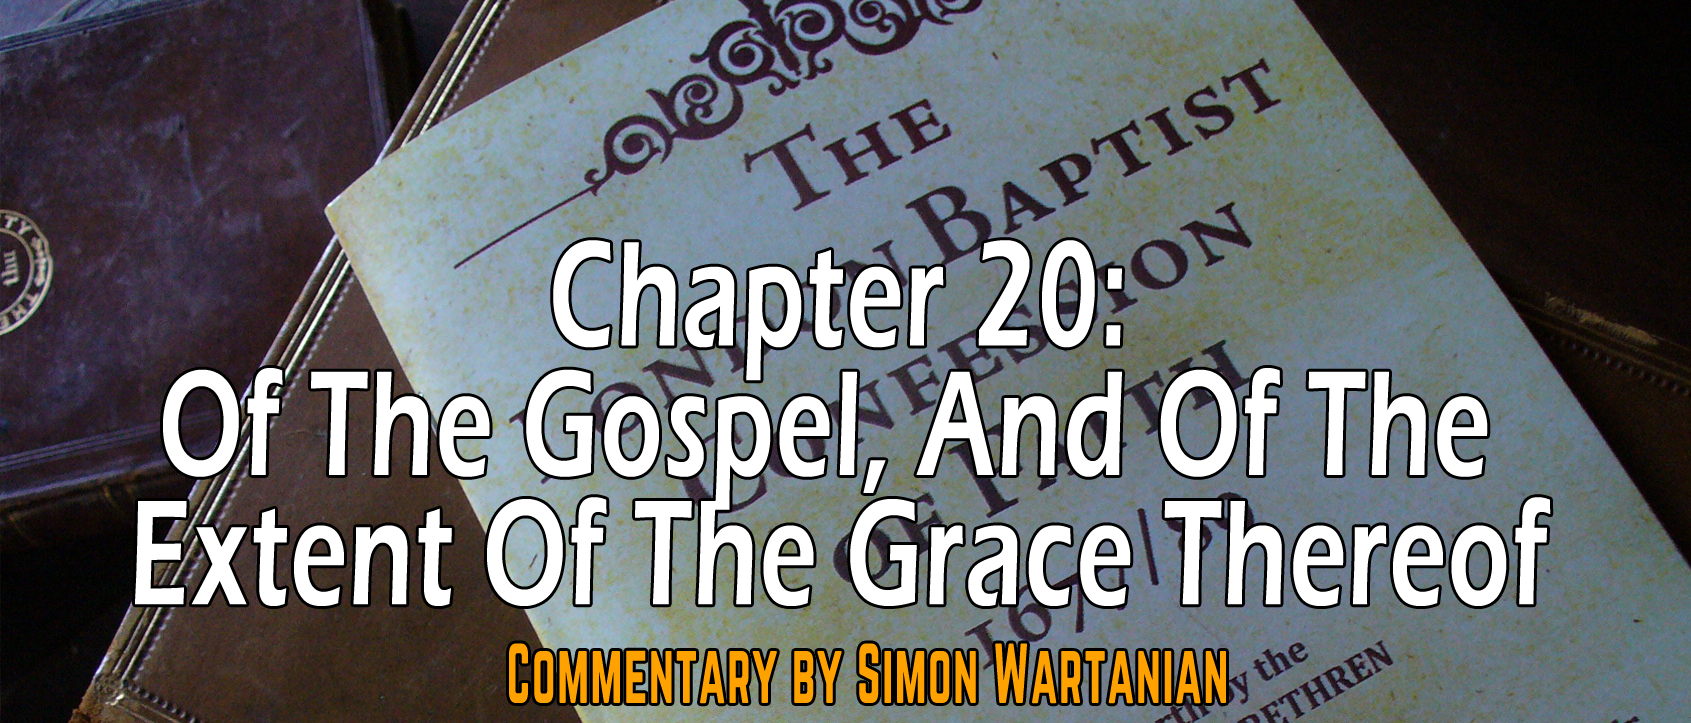 1689 Baptist Confession Chapter 20: Of the Gospel, and of the Extent of the Grace Thereof - Commentary